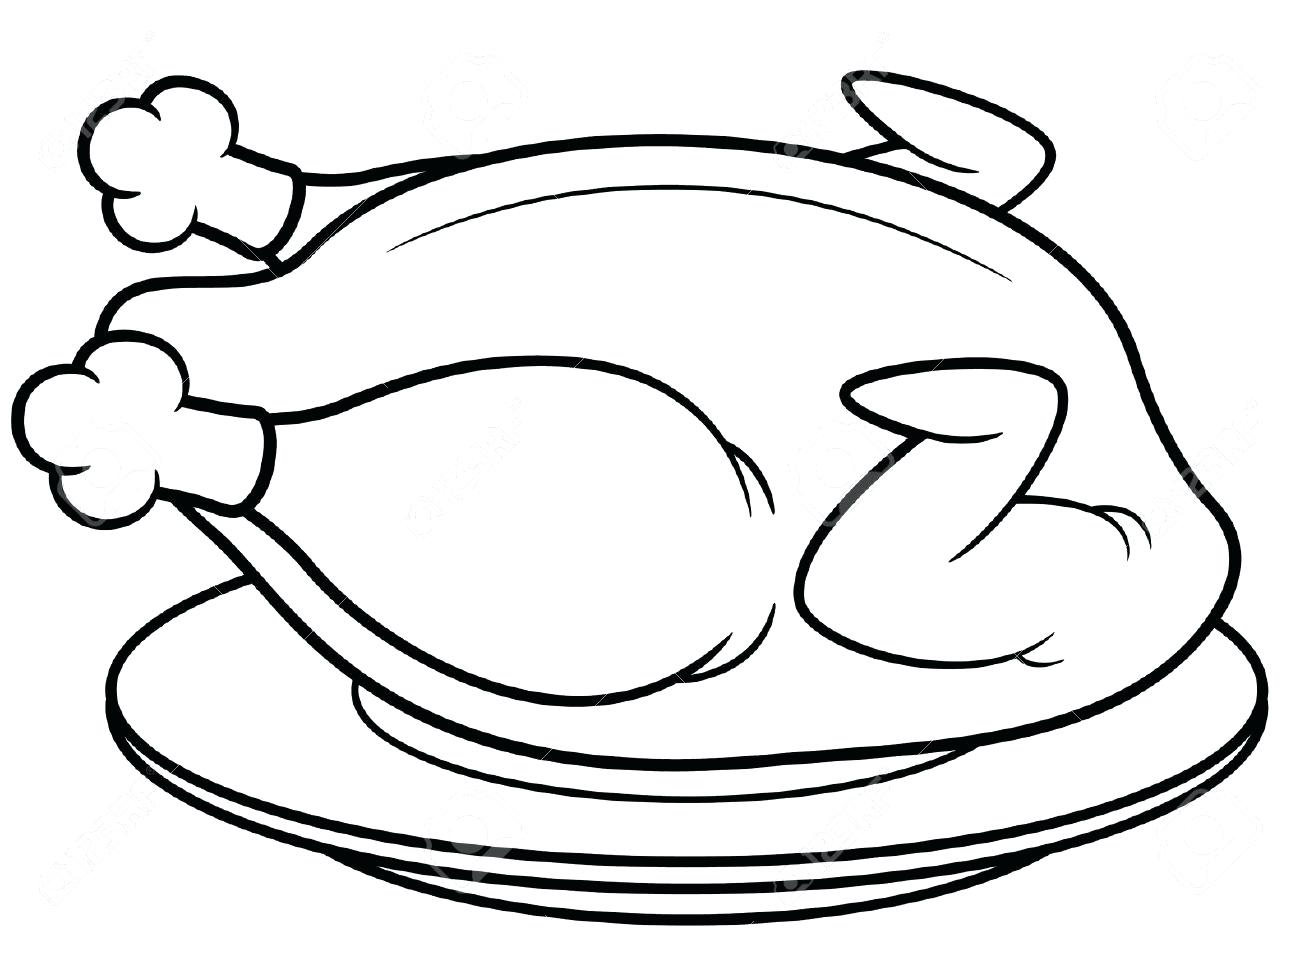 1300x974 Coloring Pages Thanksgiving Turkey Fried Page Free Printable